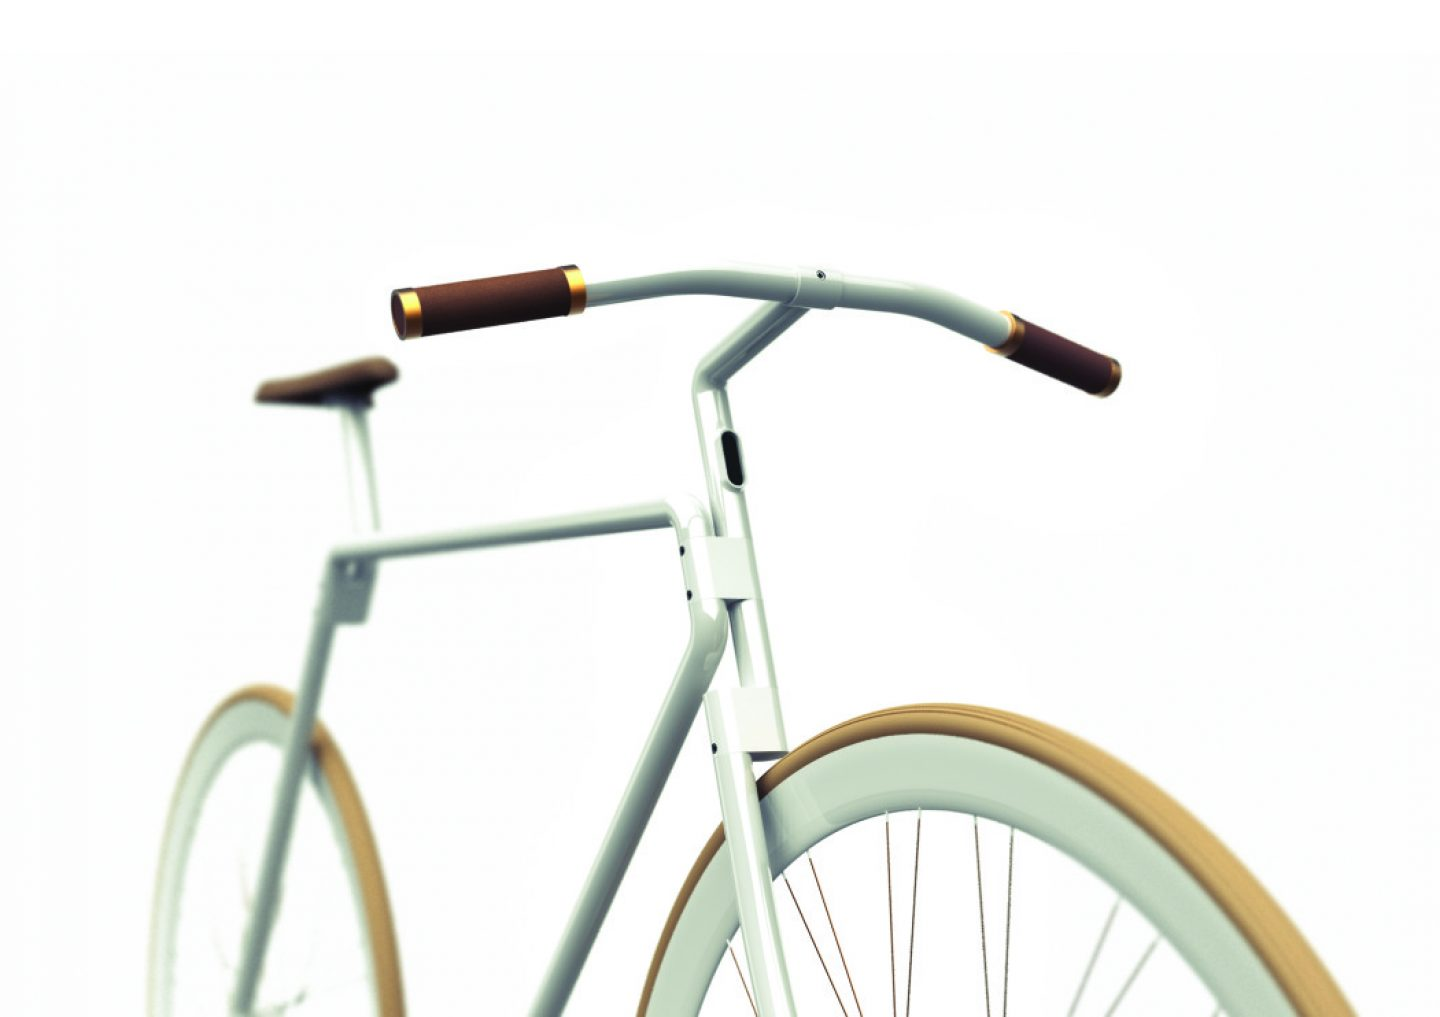 kit-bike_design_003